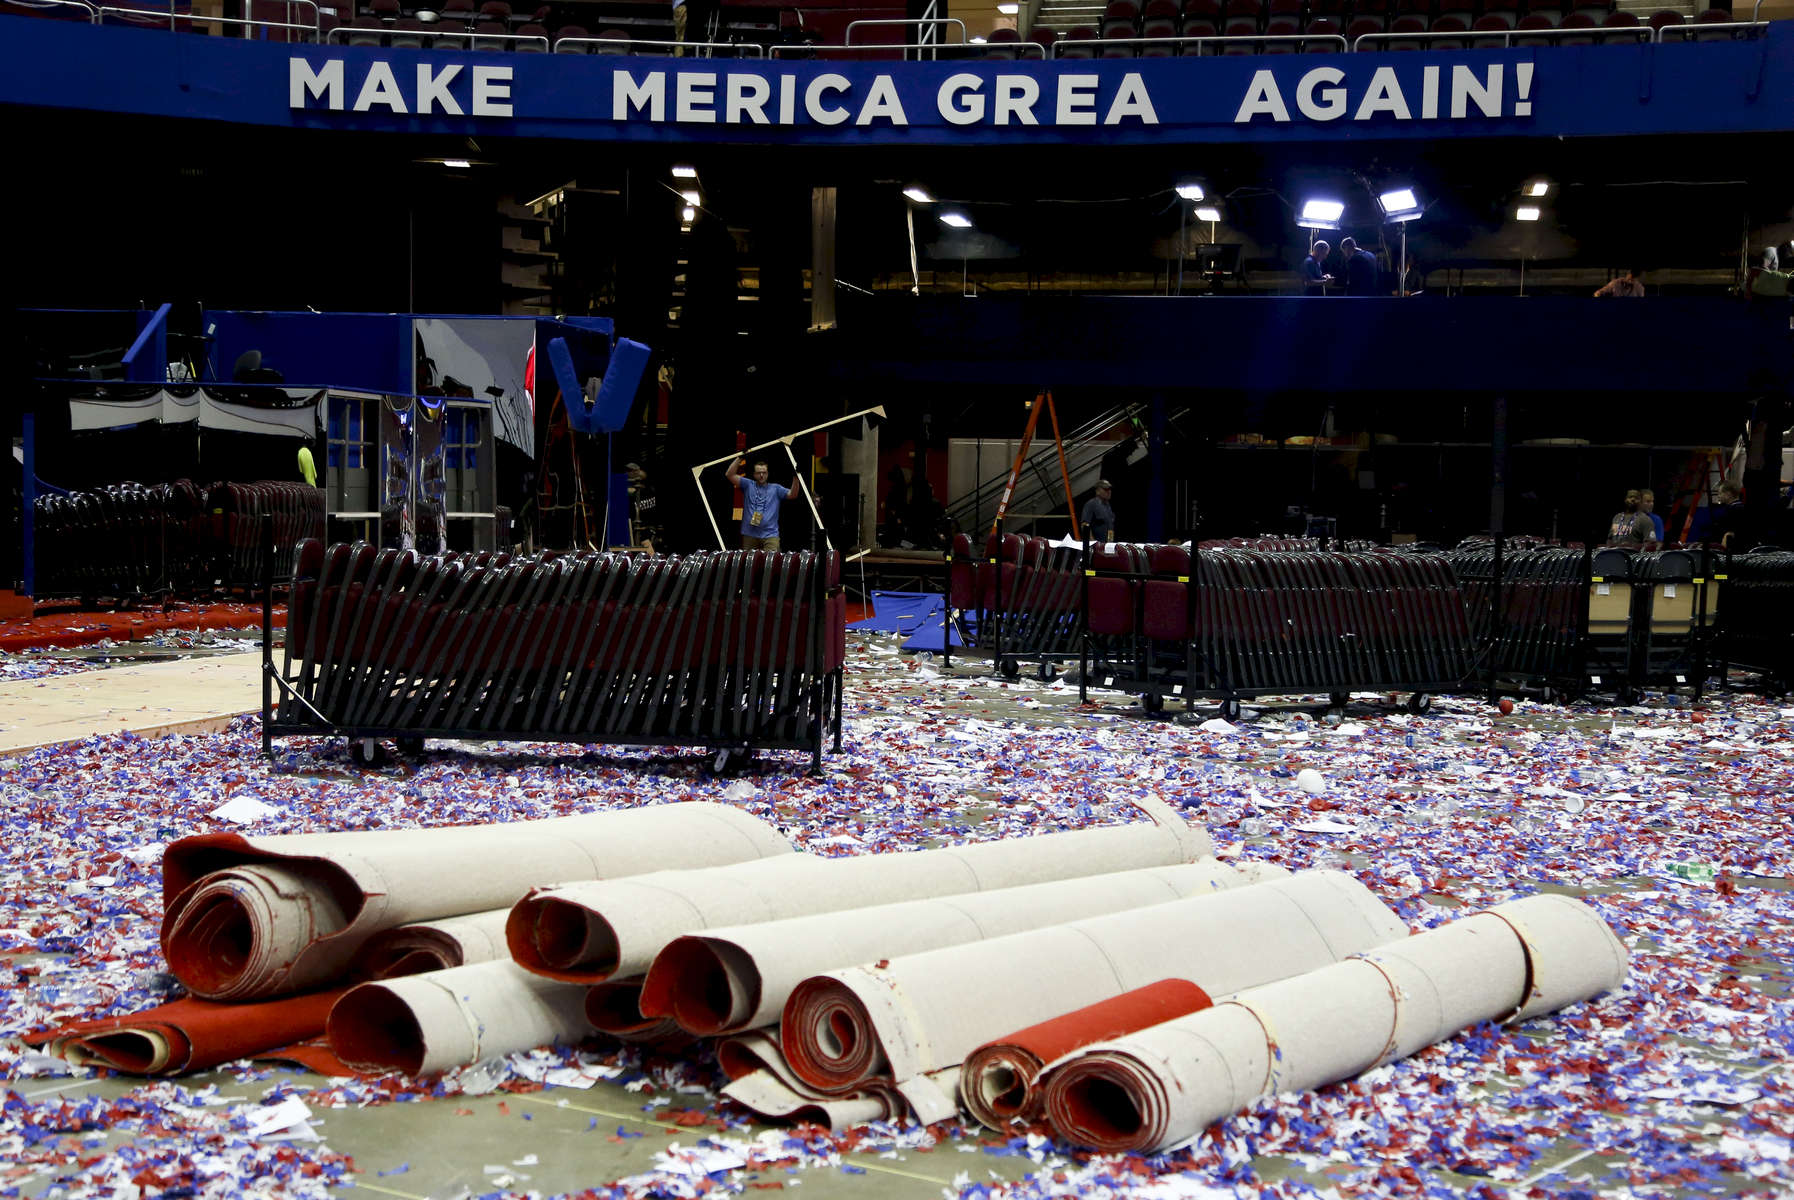 End of the Republican convention.